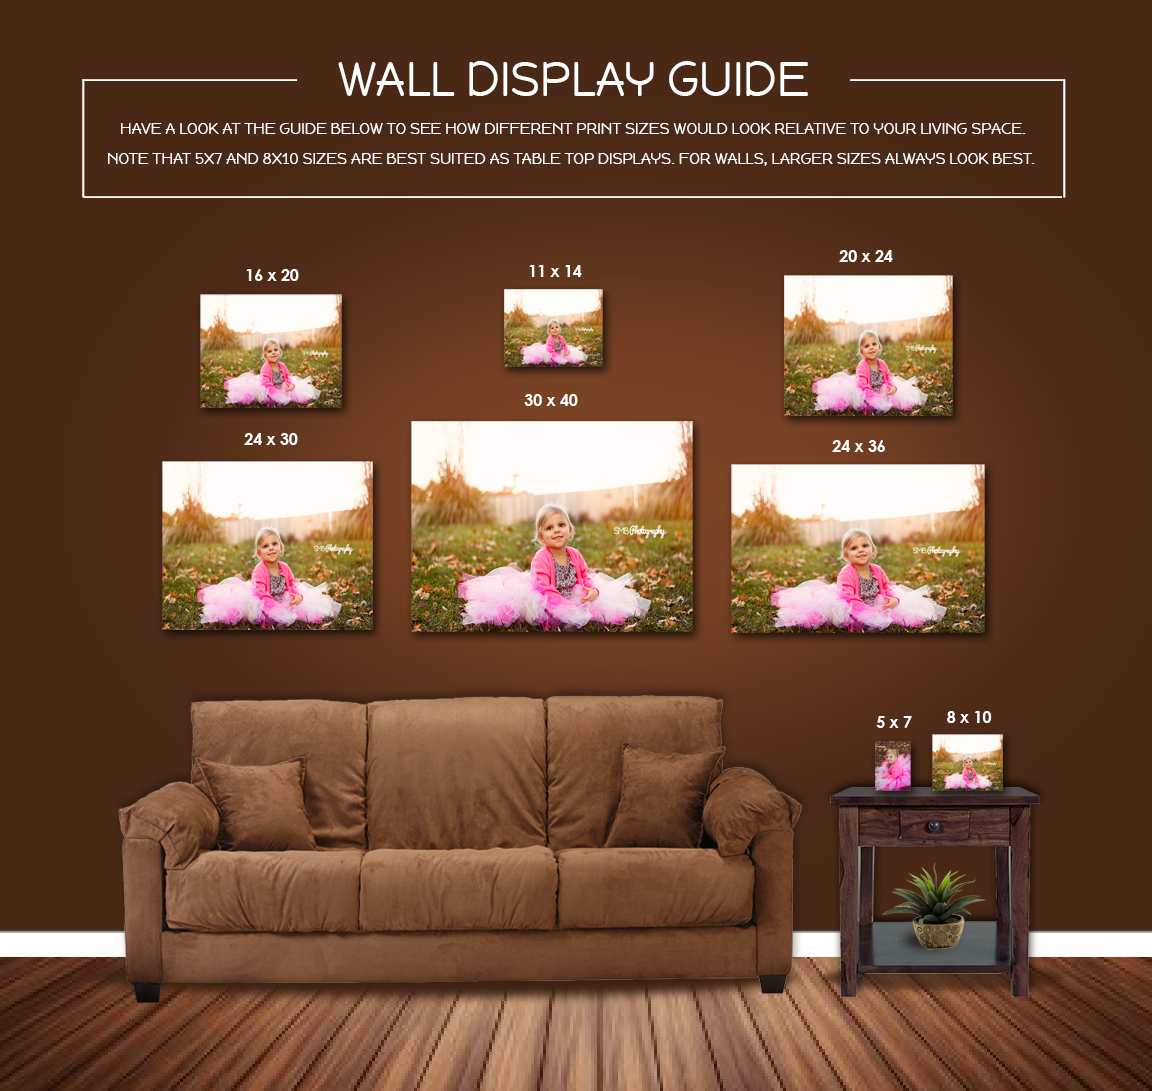 Wall portrait display guide